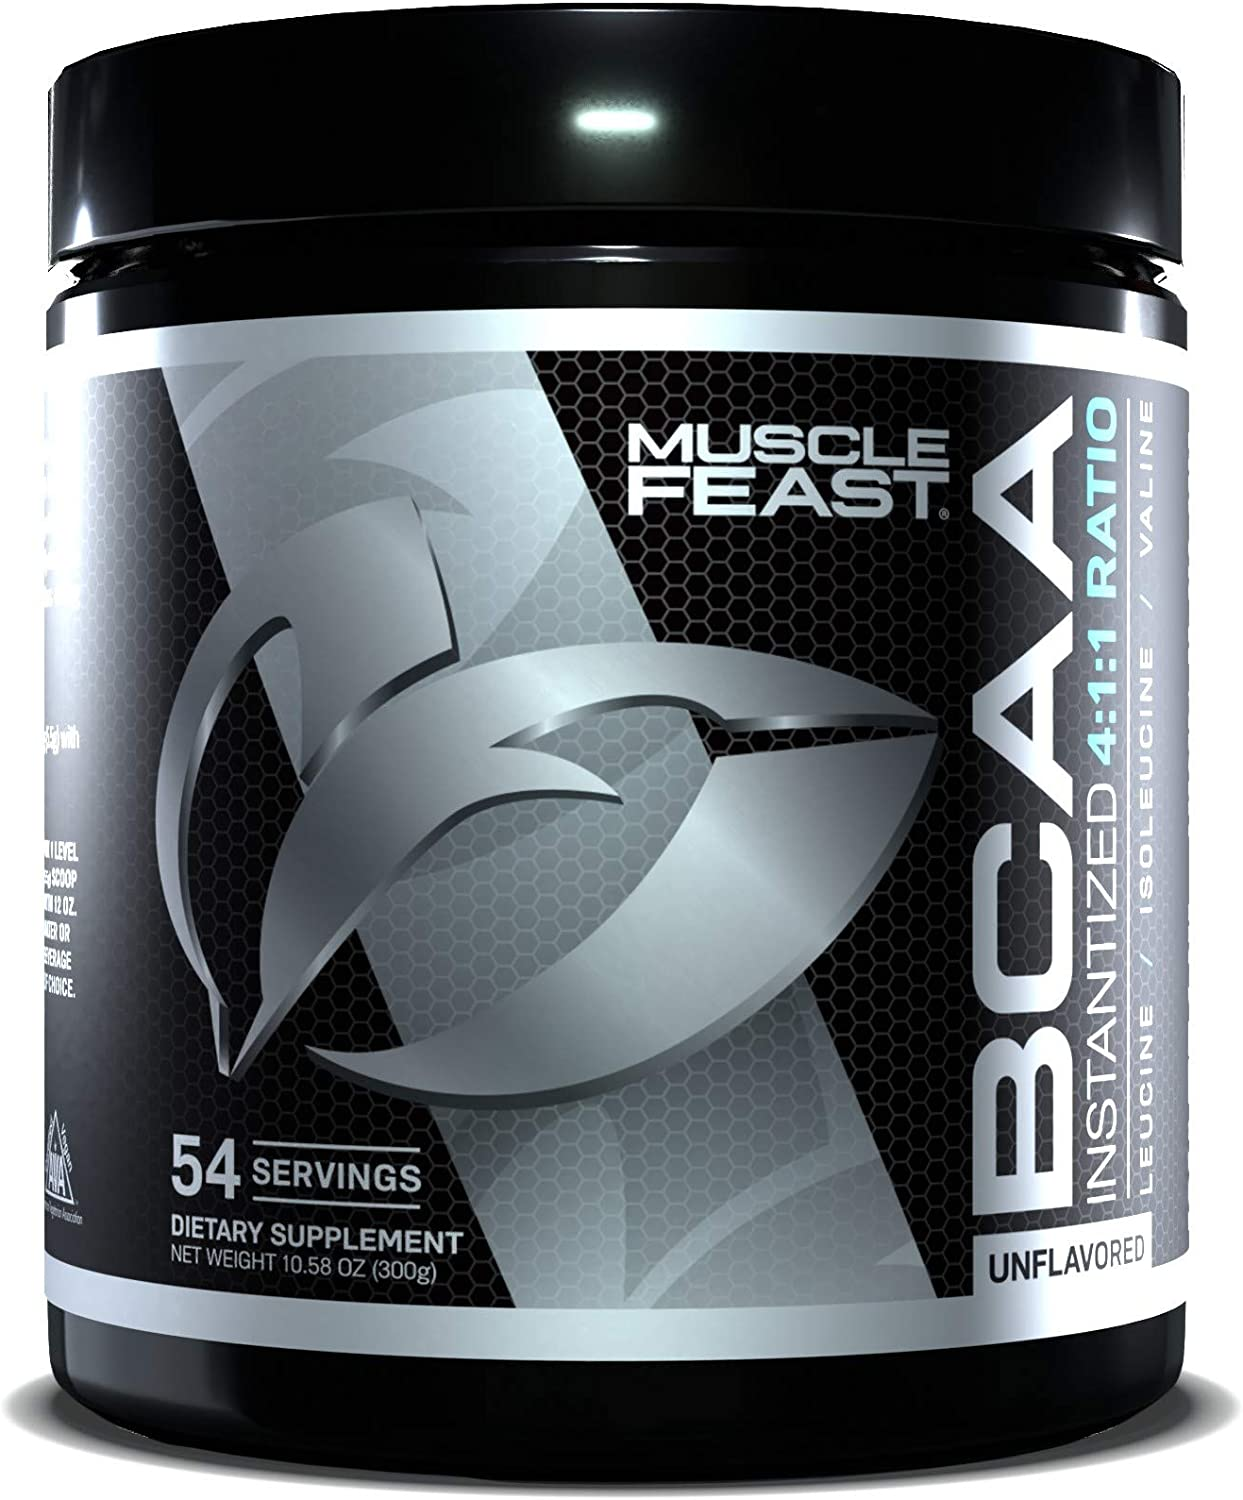 MUSCLE FEAST Vegan BCAA Powder 4:1:1 Ratio, Keto Friendly, Sugar Free, Post Workout Recovery, 54 Servings (300 Gram, Unflavored)